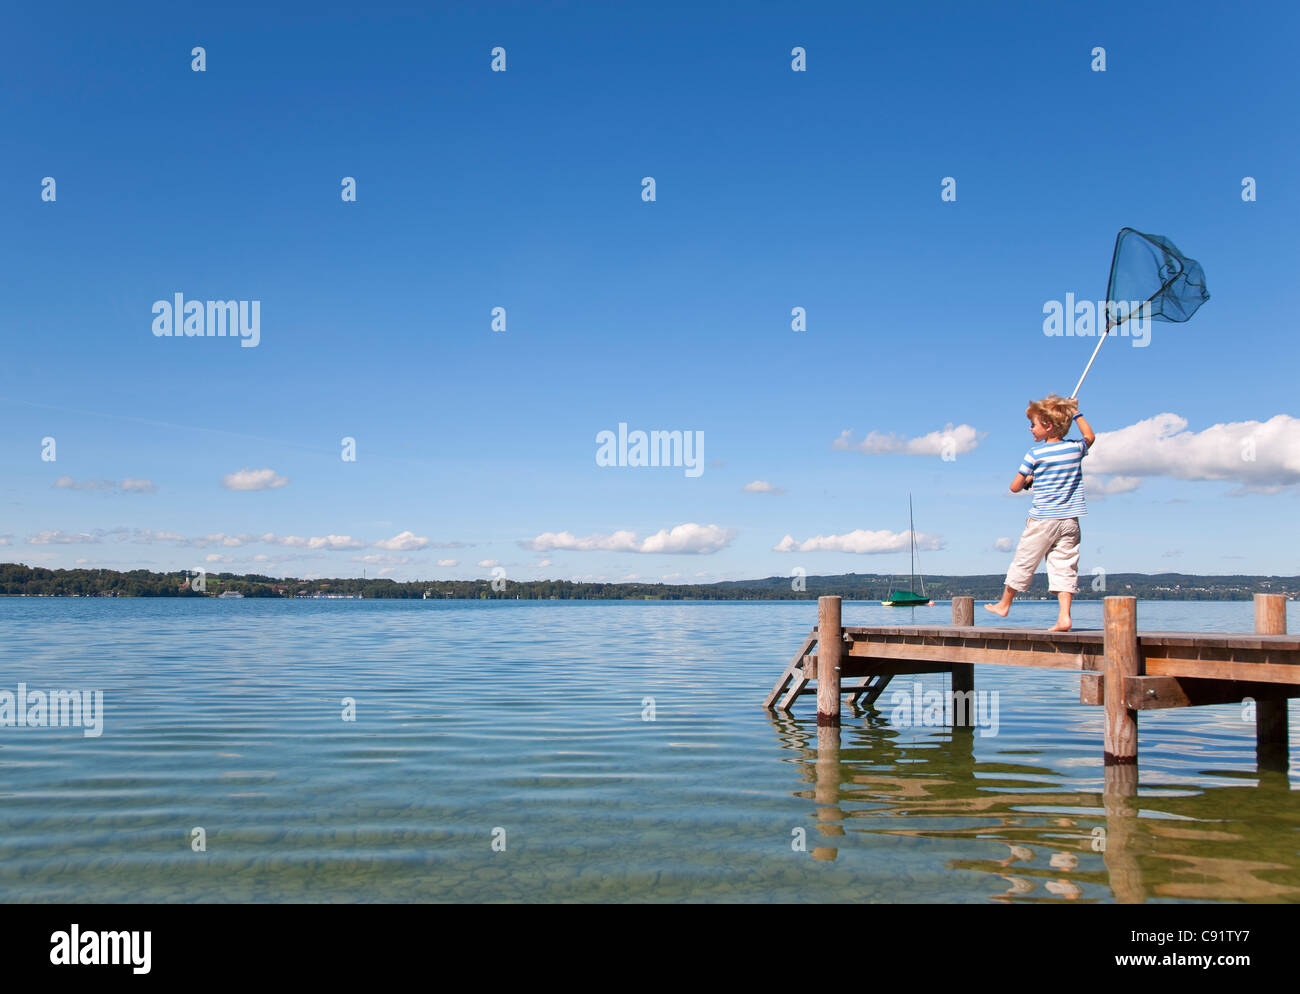 Boy fishing with net in lake Stock Photo